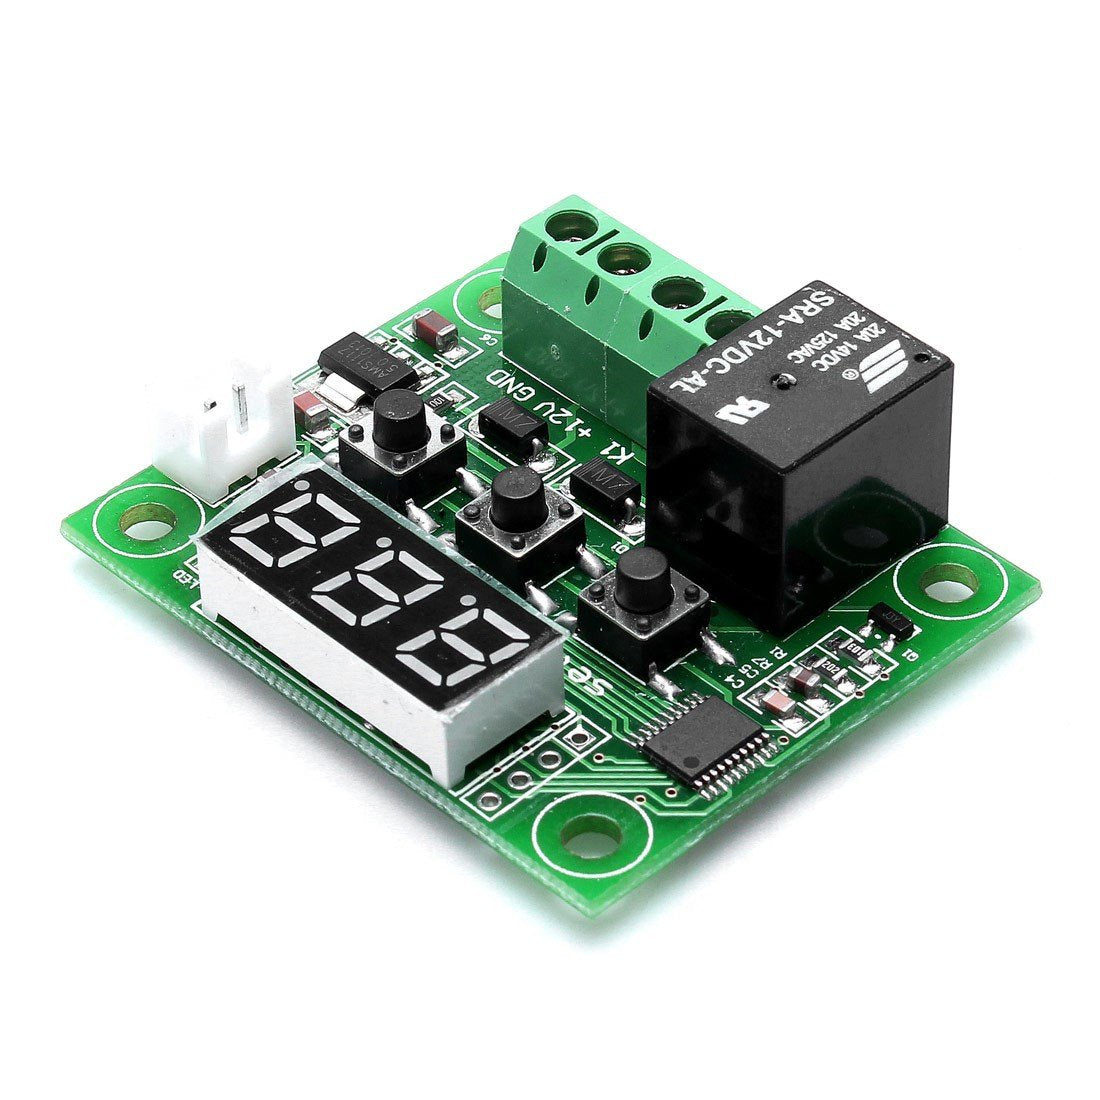 '-50~110C DC 12V Mini Thermostat Regulator Digital Temperature Controller for Incubator Temperature Control Switch Plate